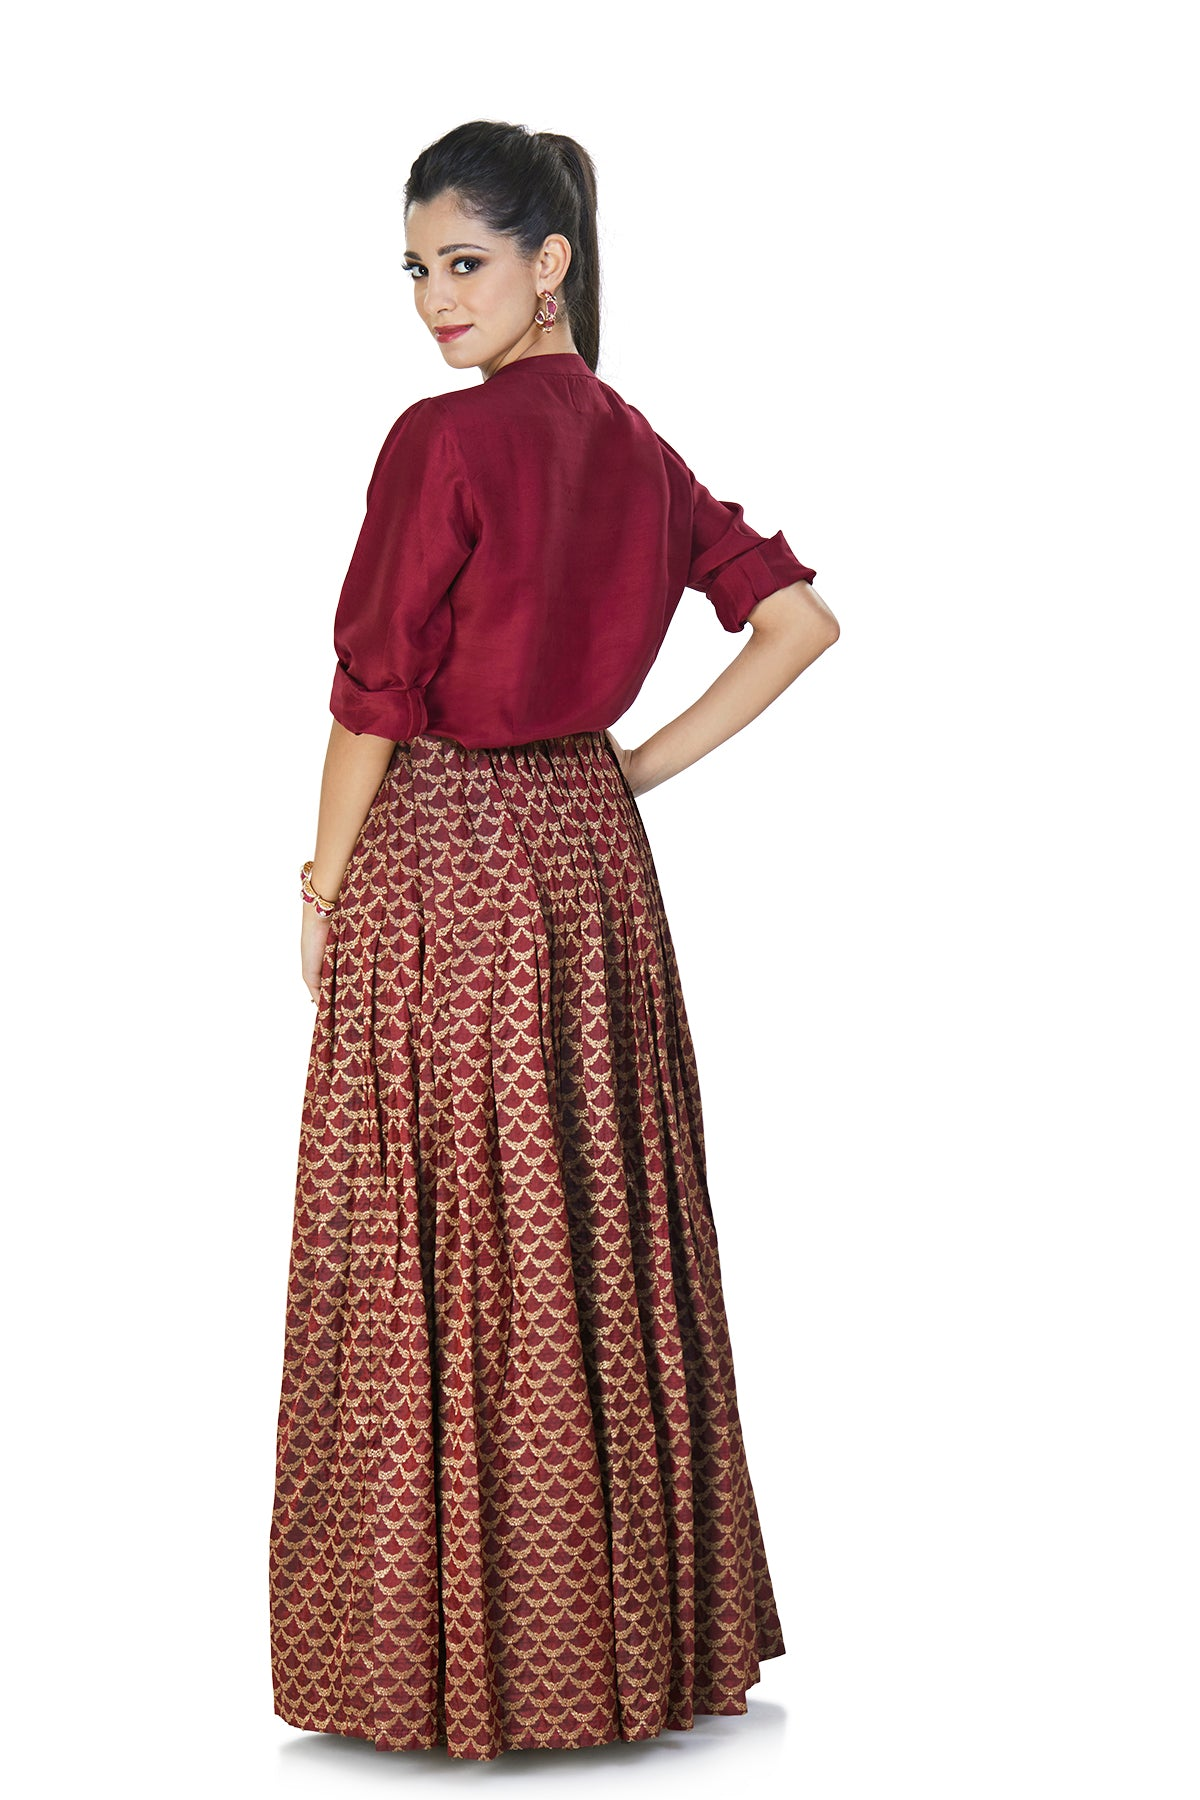 Maroon shirt and skirt set